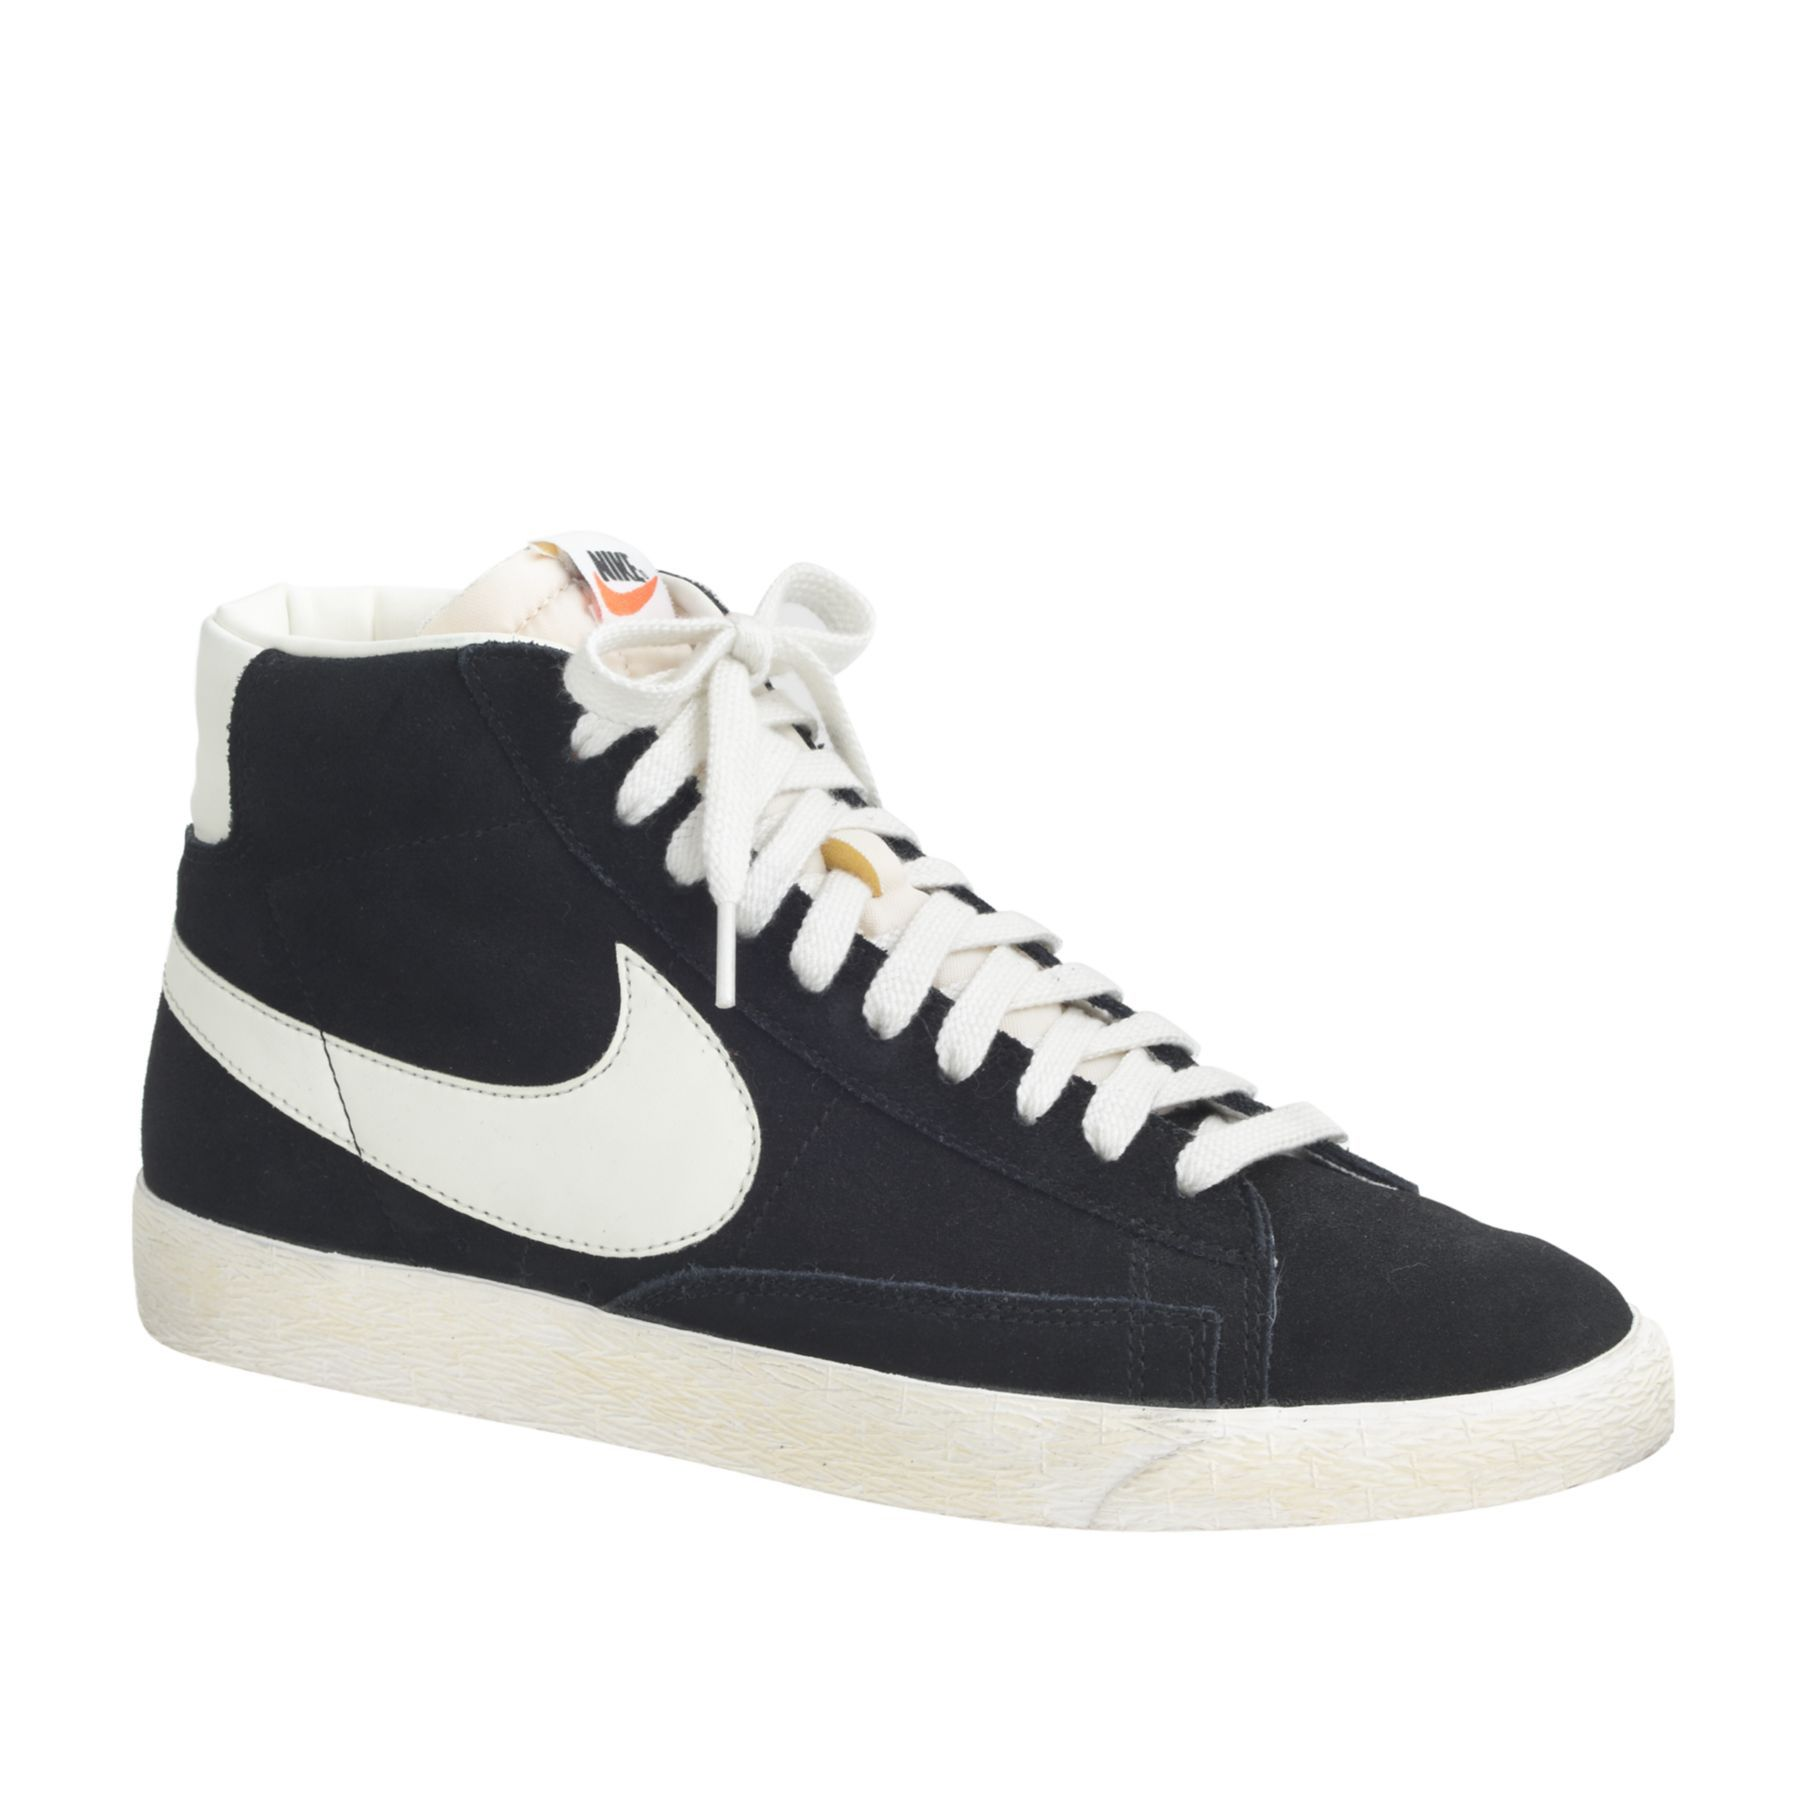 Men's Nike Blazer high suede vintage sneakers in black sail at J.Crew.